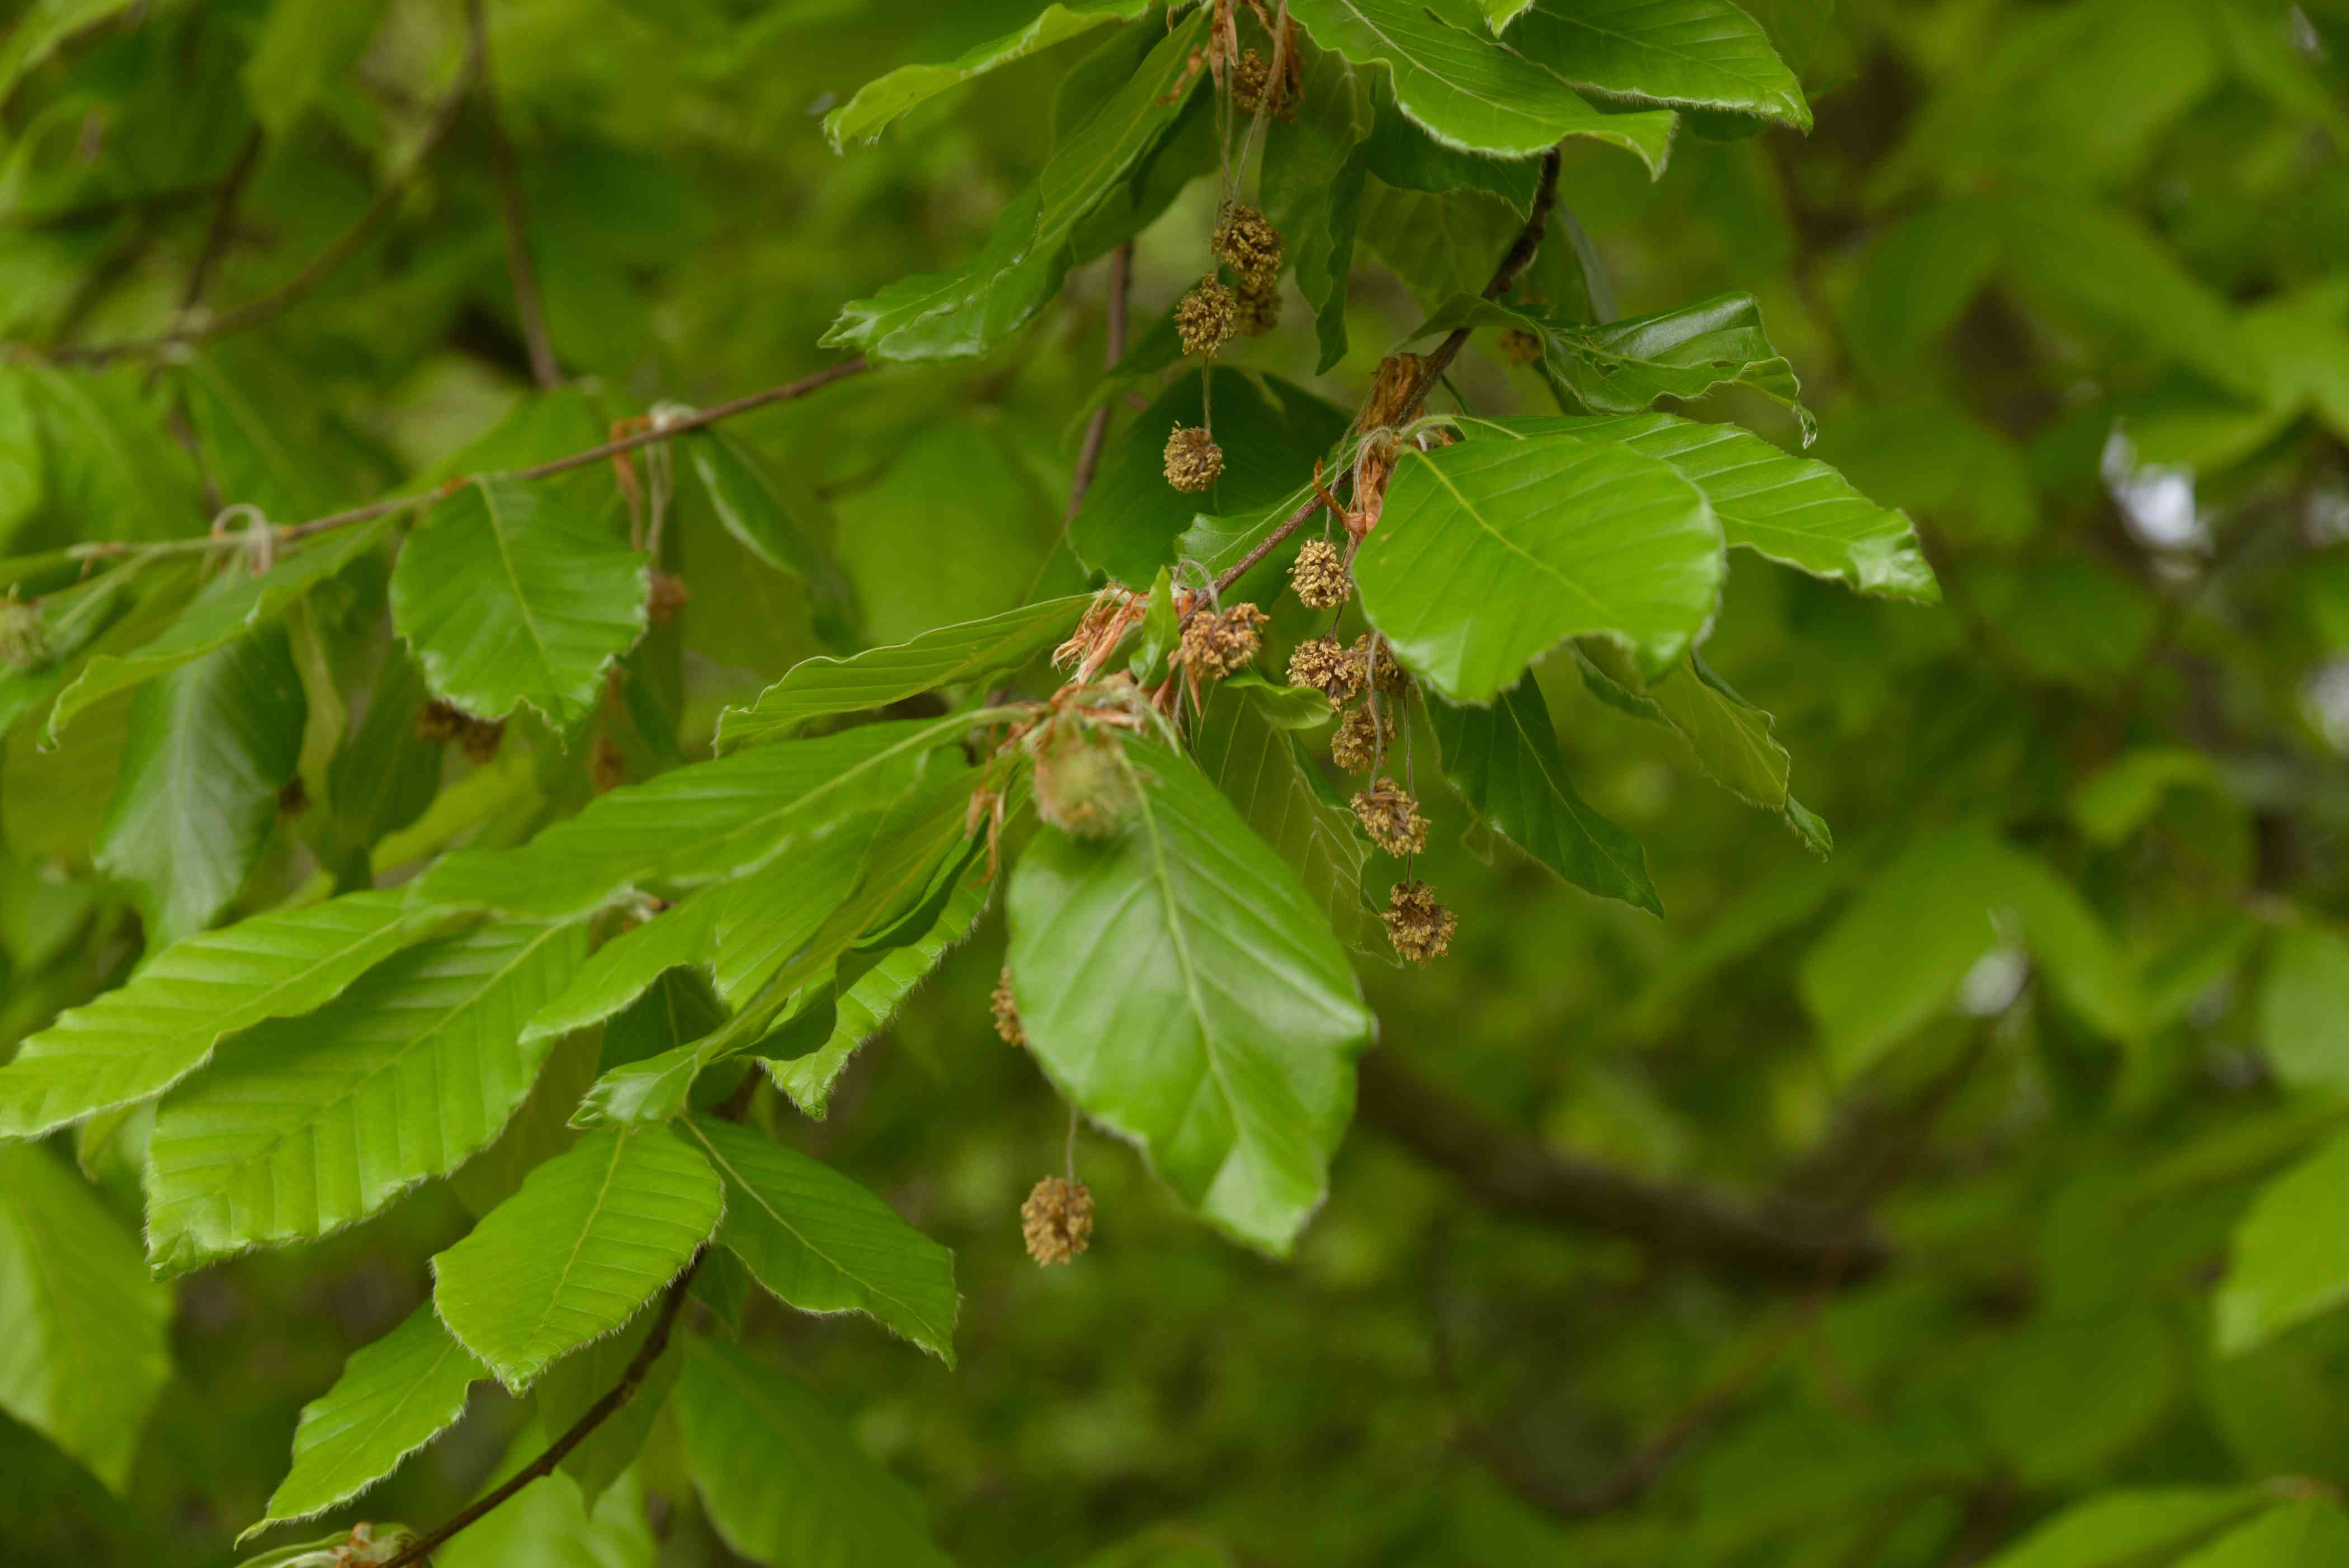 American beech tree branch with oval veined leaves with small beechnuts